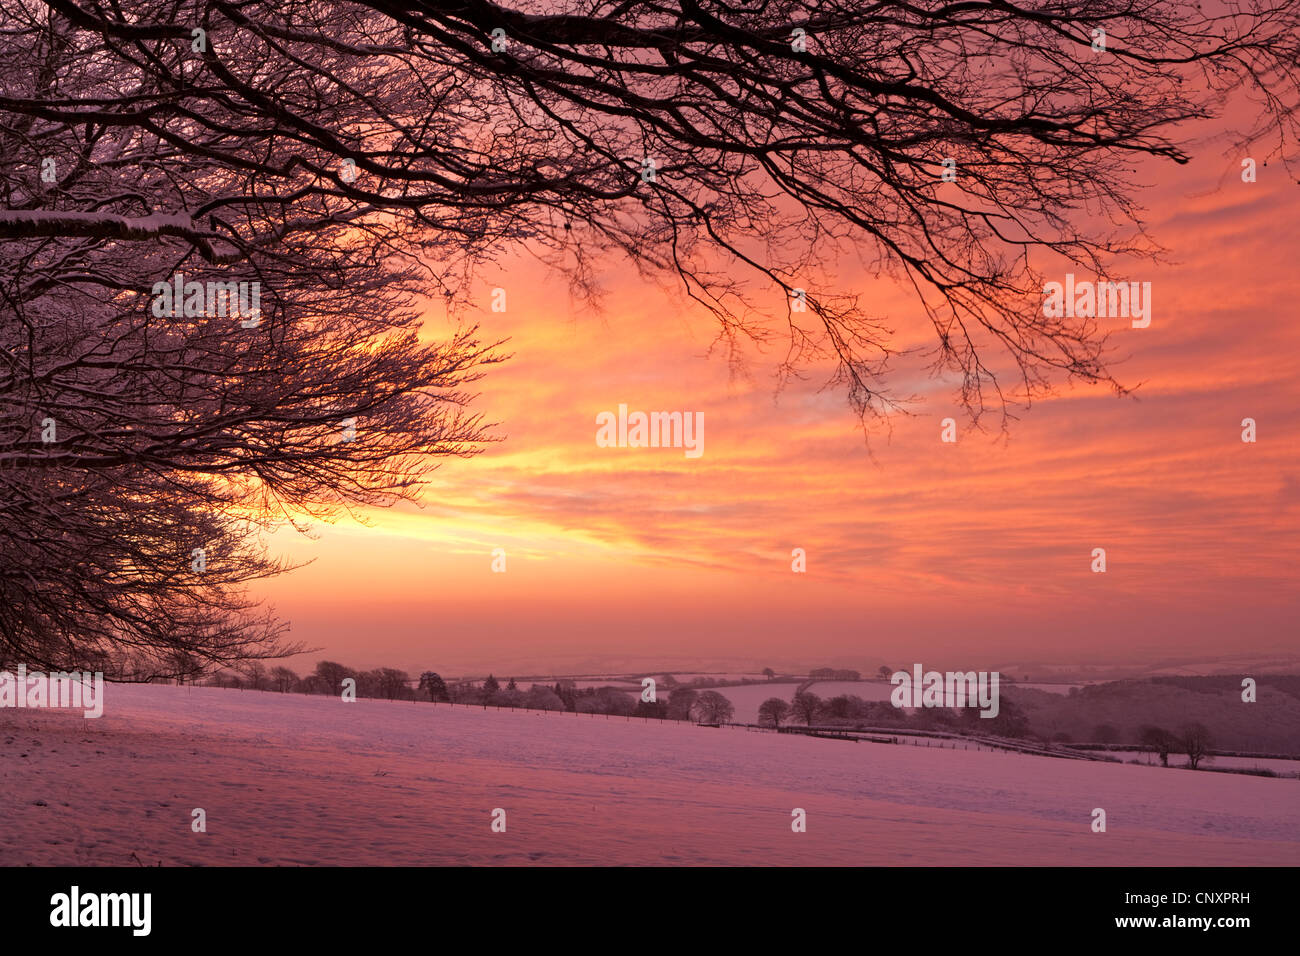 Spectacular dawn sky above snow covered countryside, Exmoor, Somerset, England. Winter (January) 2012. - Stock Image